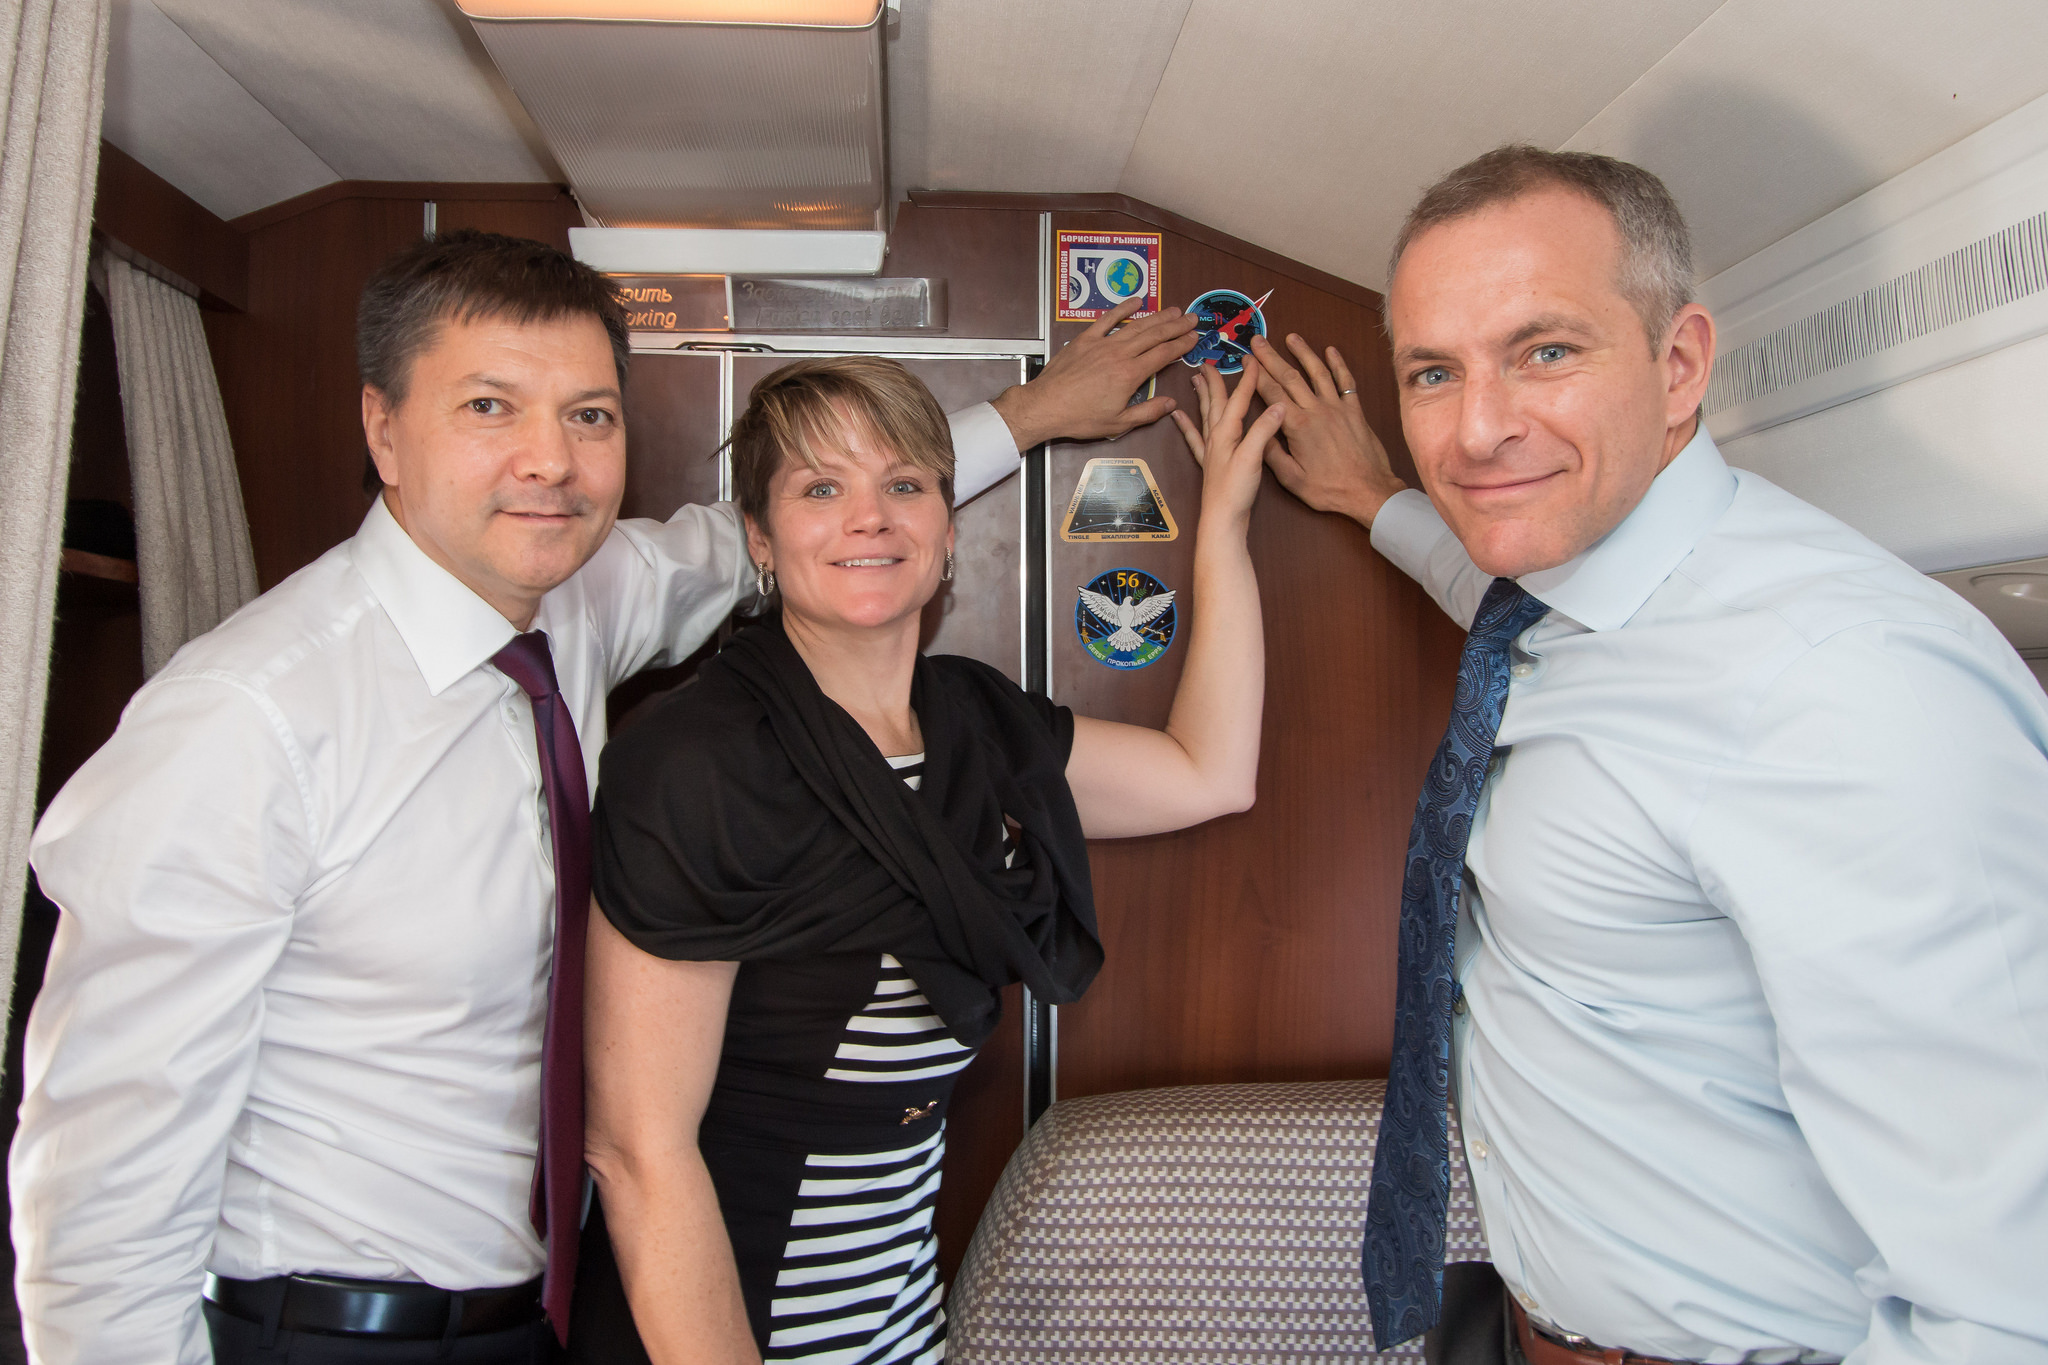 Aboard a Gagarin Cosmonaut Training Center aircraft, Expedition 58 crew members Oleg Kononenko of Roscosmos (left), Anne McClain of NASA (center) and David Saint-Jacques of the Canadian Space Agency (right) affix a Soyuz MS-11 sticker to the wall of the cabin Nov. 19 in a traditional ceremony as they flew to their launch site in Baikonur, Kazakhstan. They will launch Dec. 3 on the Soyuz MS-11 spacecraft from the Baikonur Cosmodrome in Kazakhstan for a six-and-a-half month mission on the International Space Station